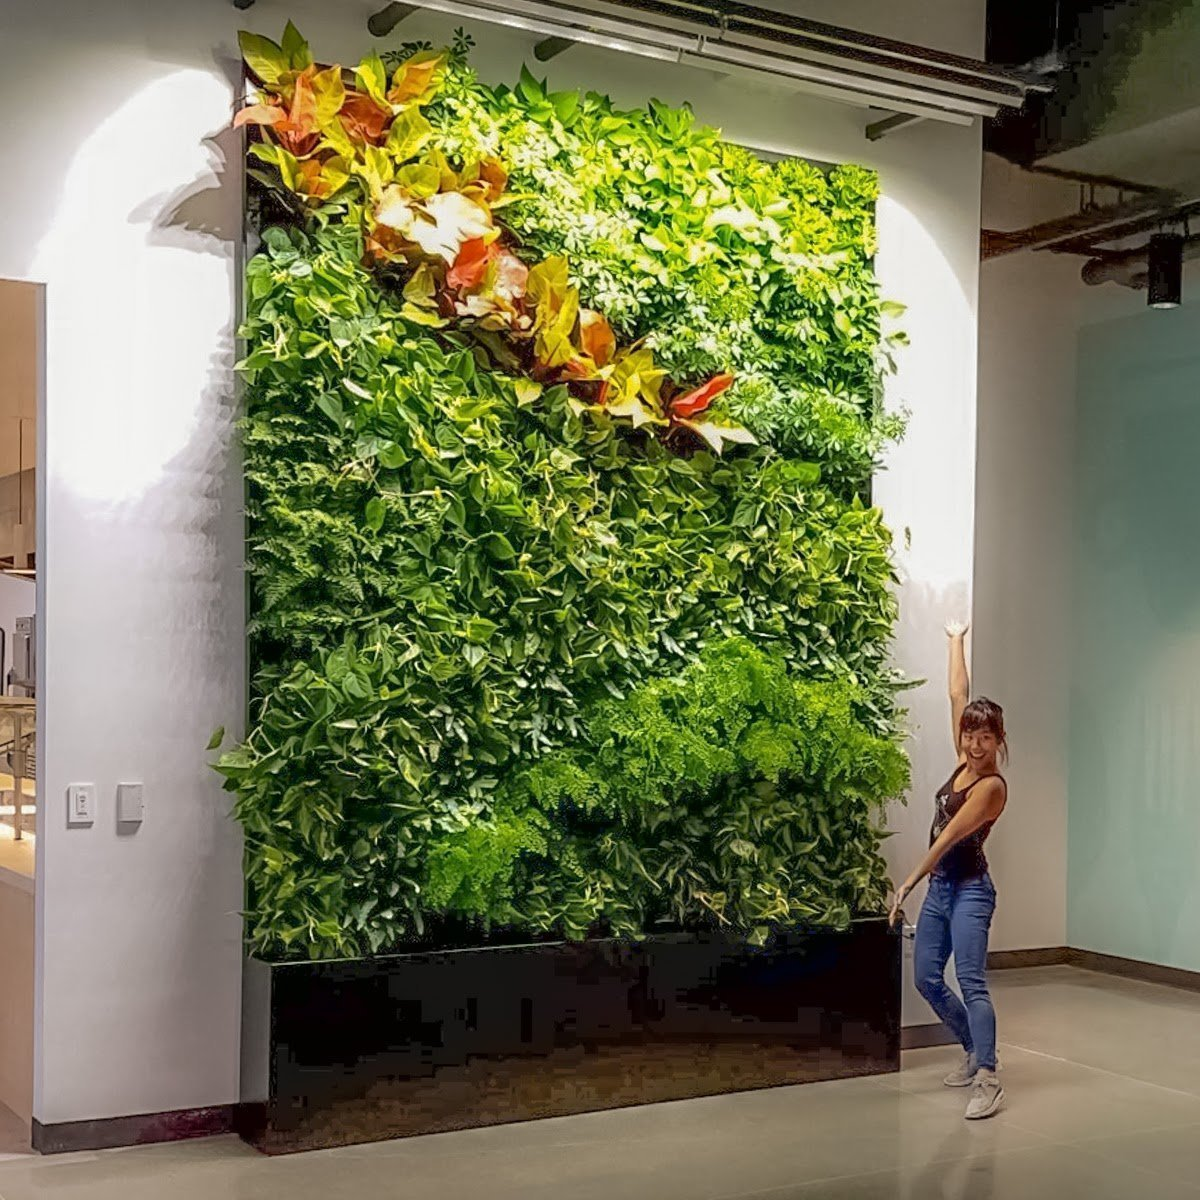 Florafelt Pockets Vertical Garden Installation by Chris Bribach Plants On Walls, San Francisco